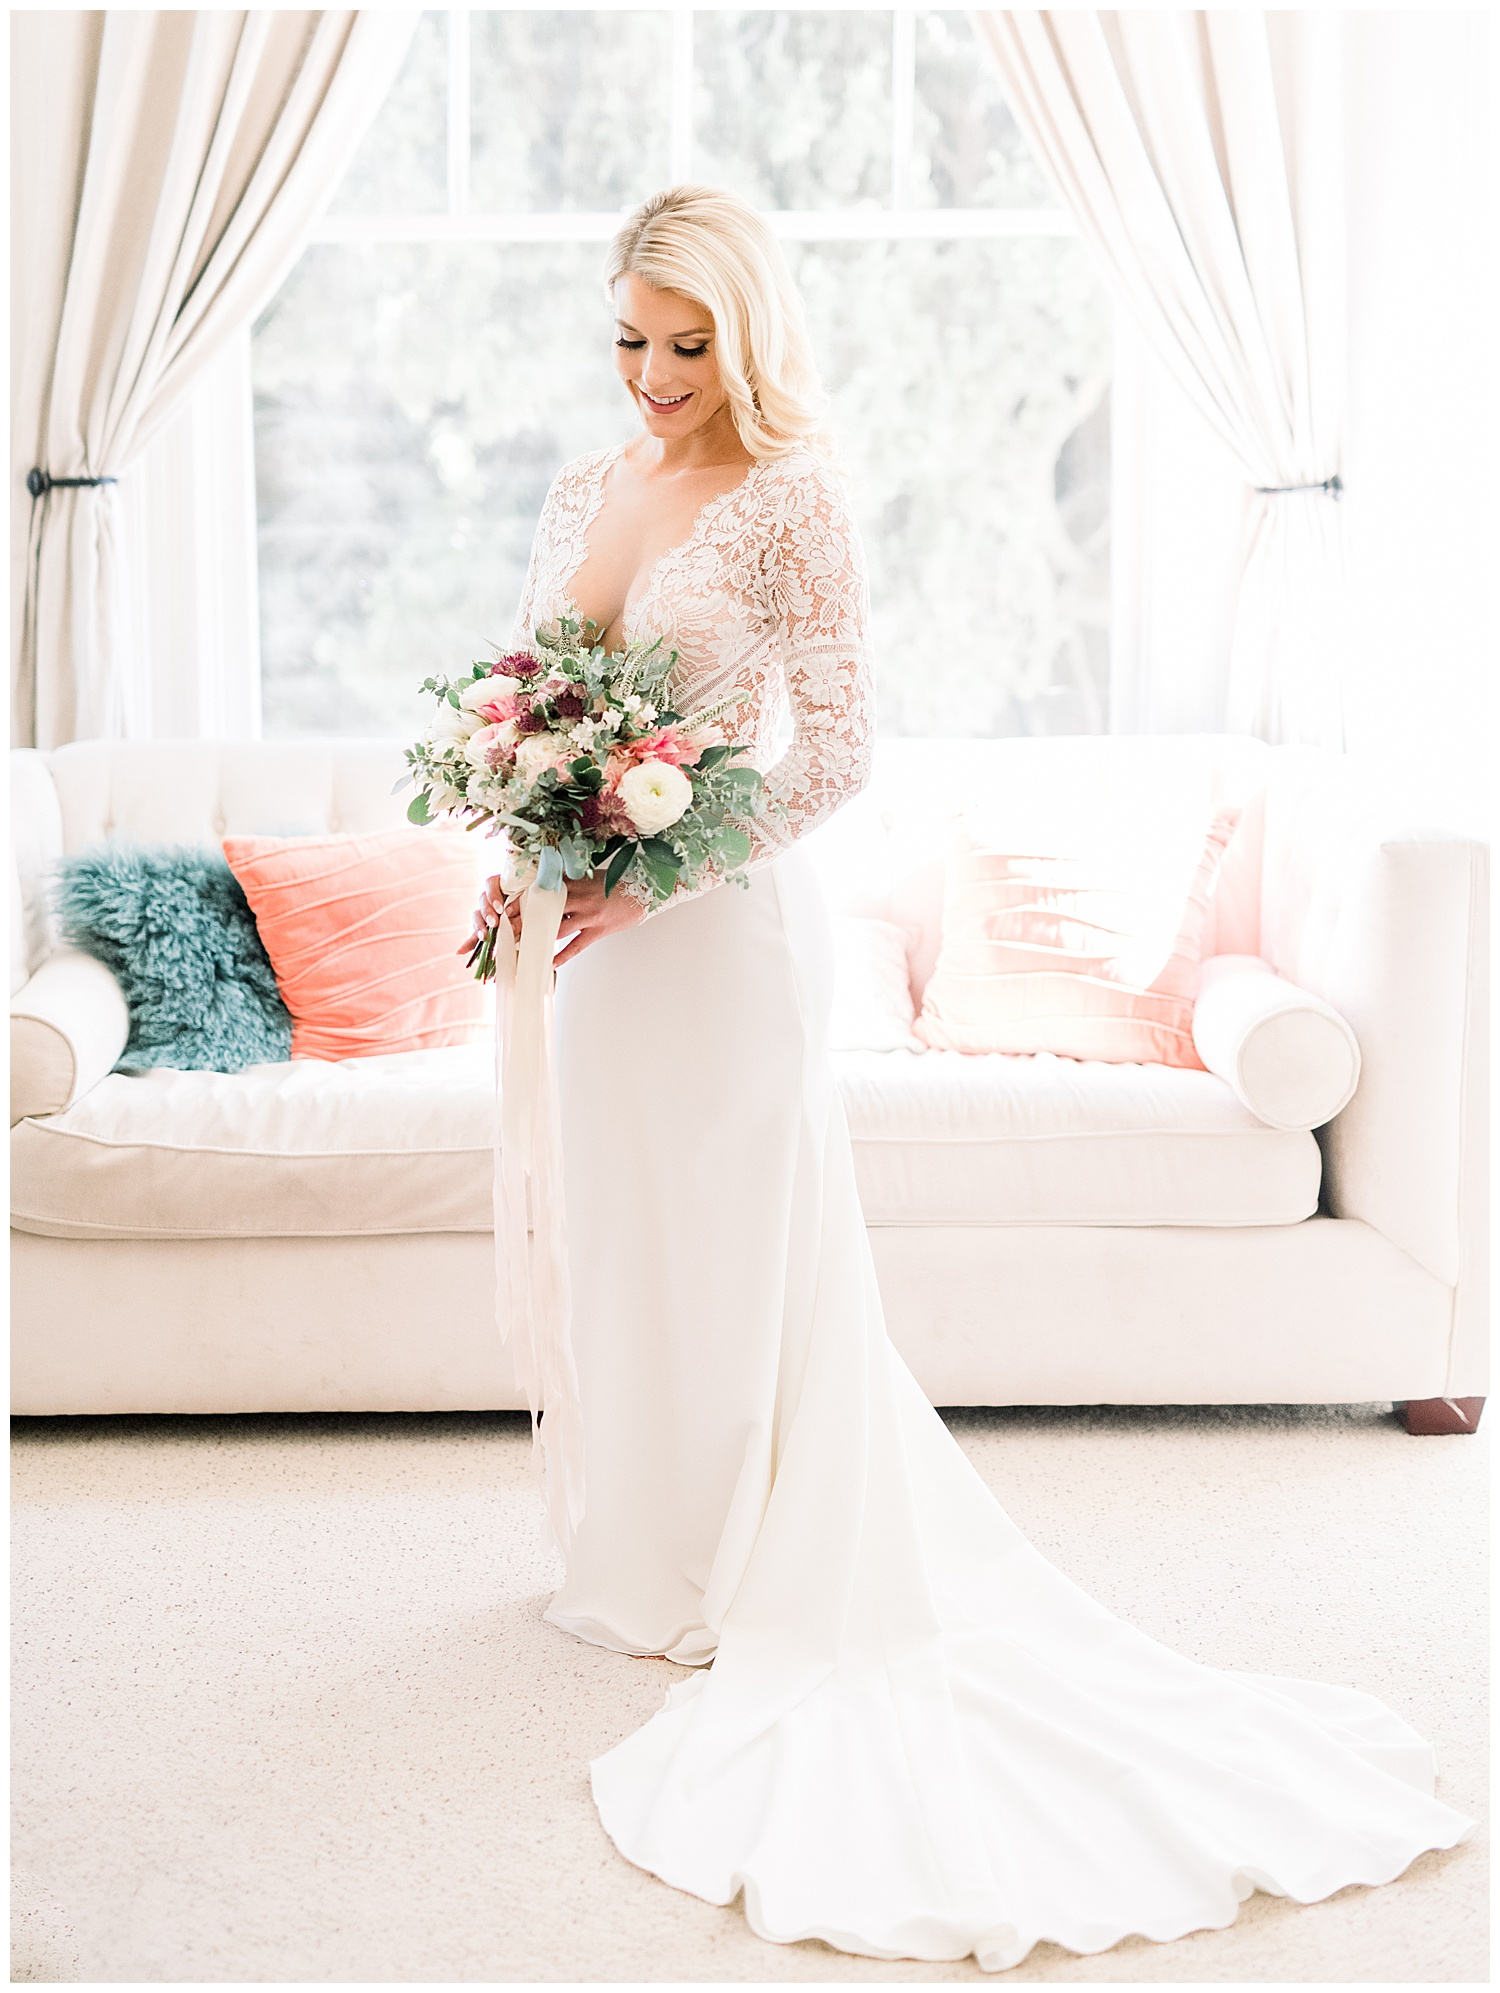 Janine_Licare_Photography_San_Francisco_Wedding_Photographer_Carneros_Tyge_Williams_Sonoma_Napa_0248.jpg